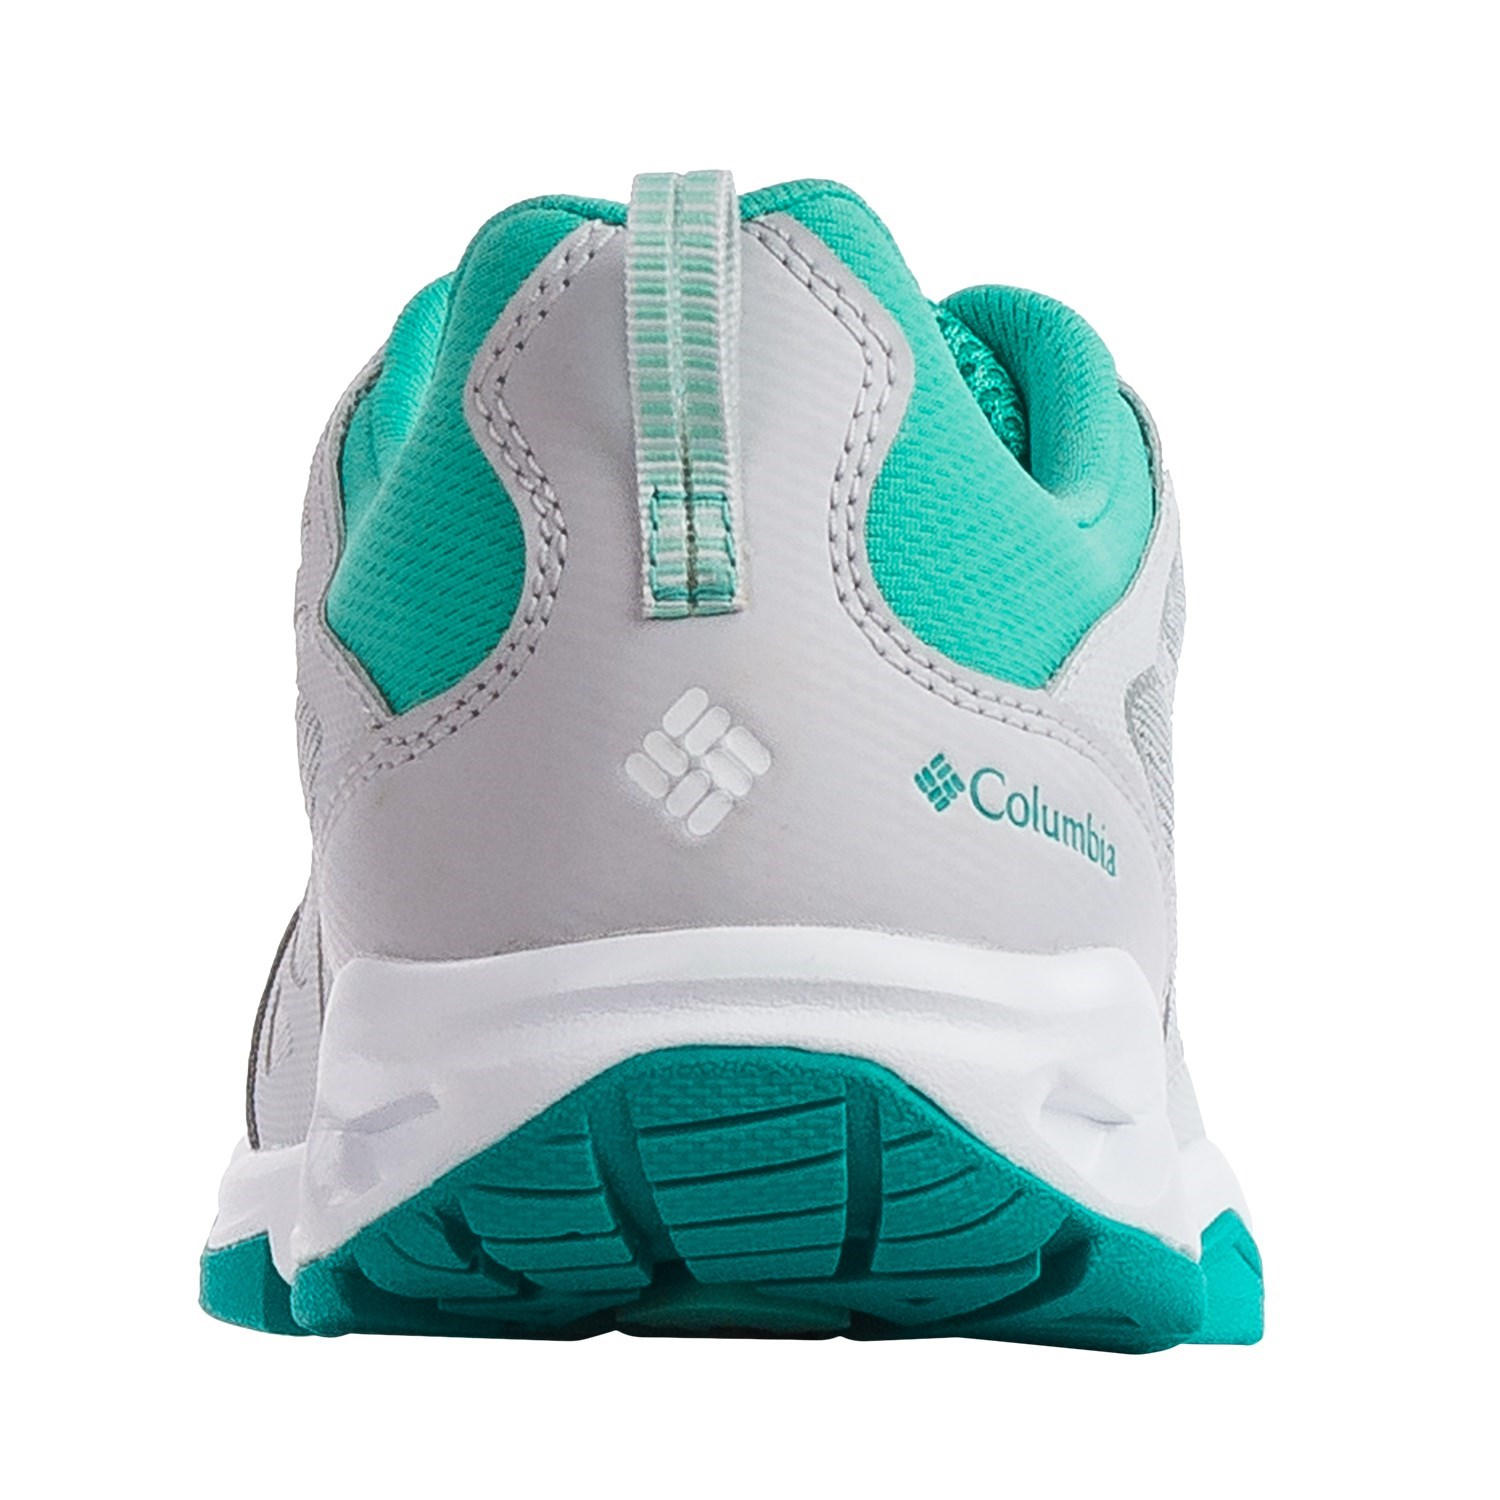 Columbia Sportswear Megavent Shoes For Women